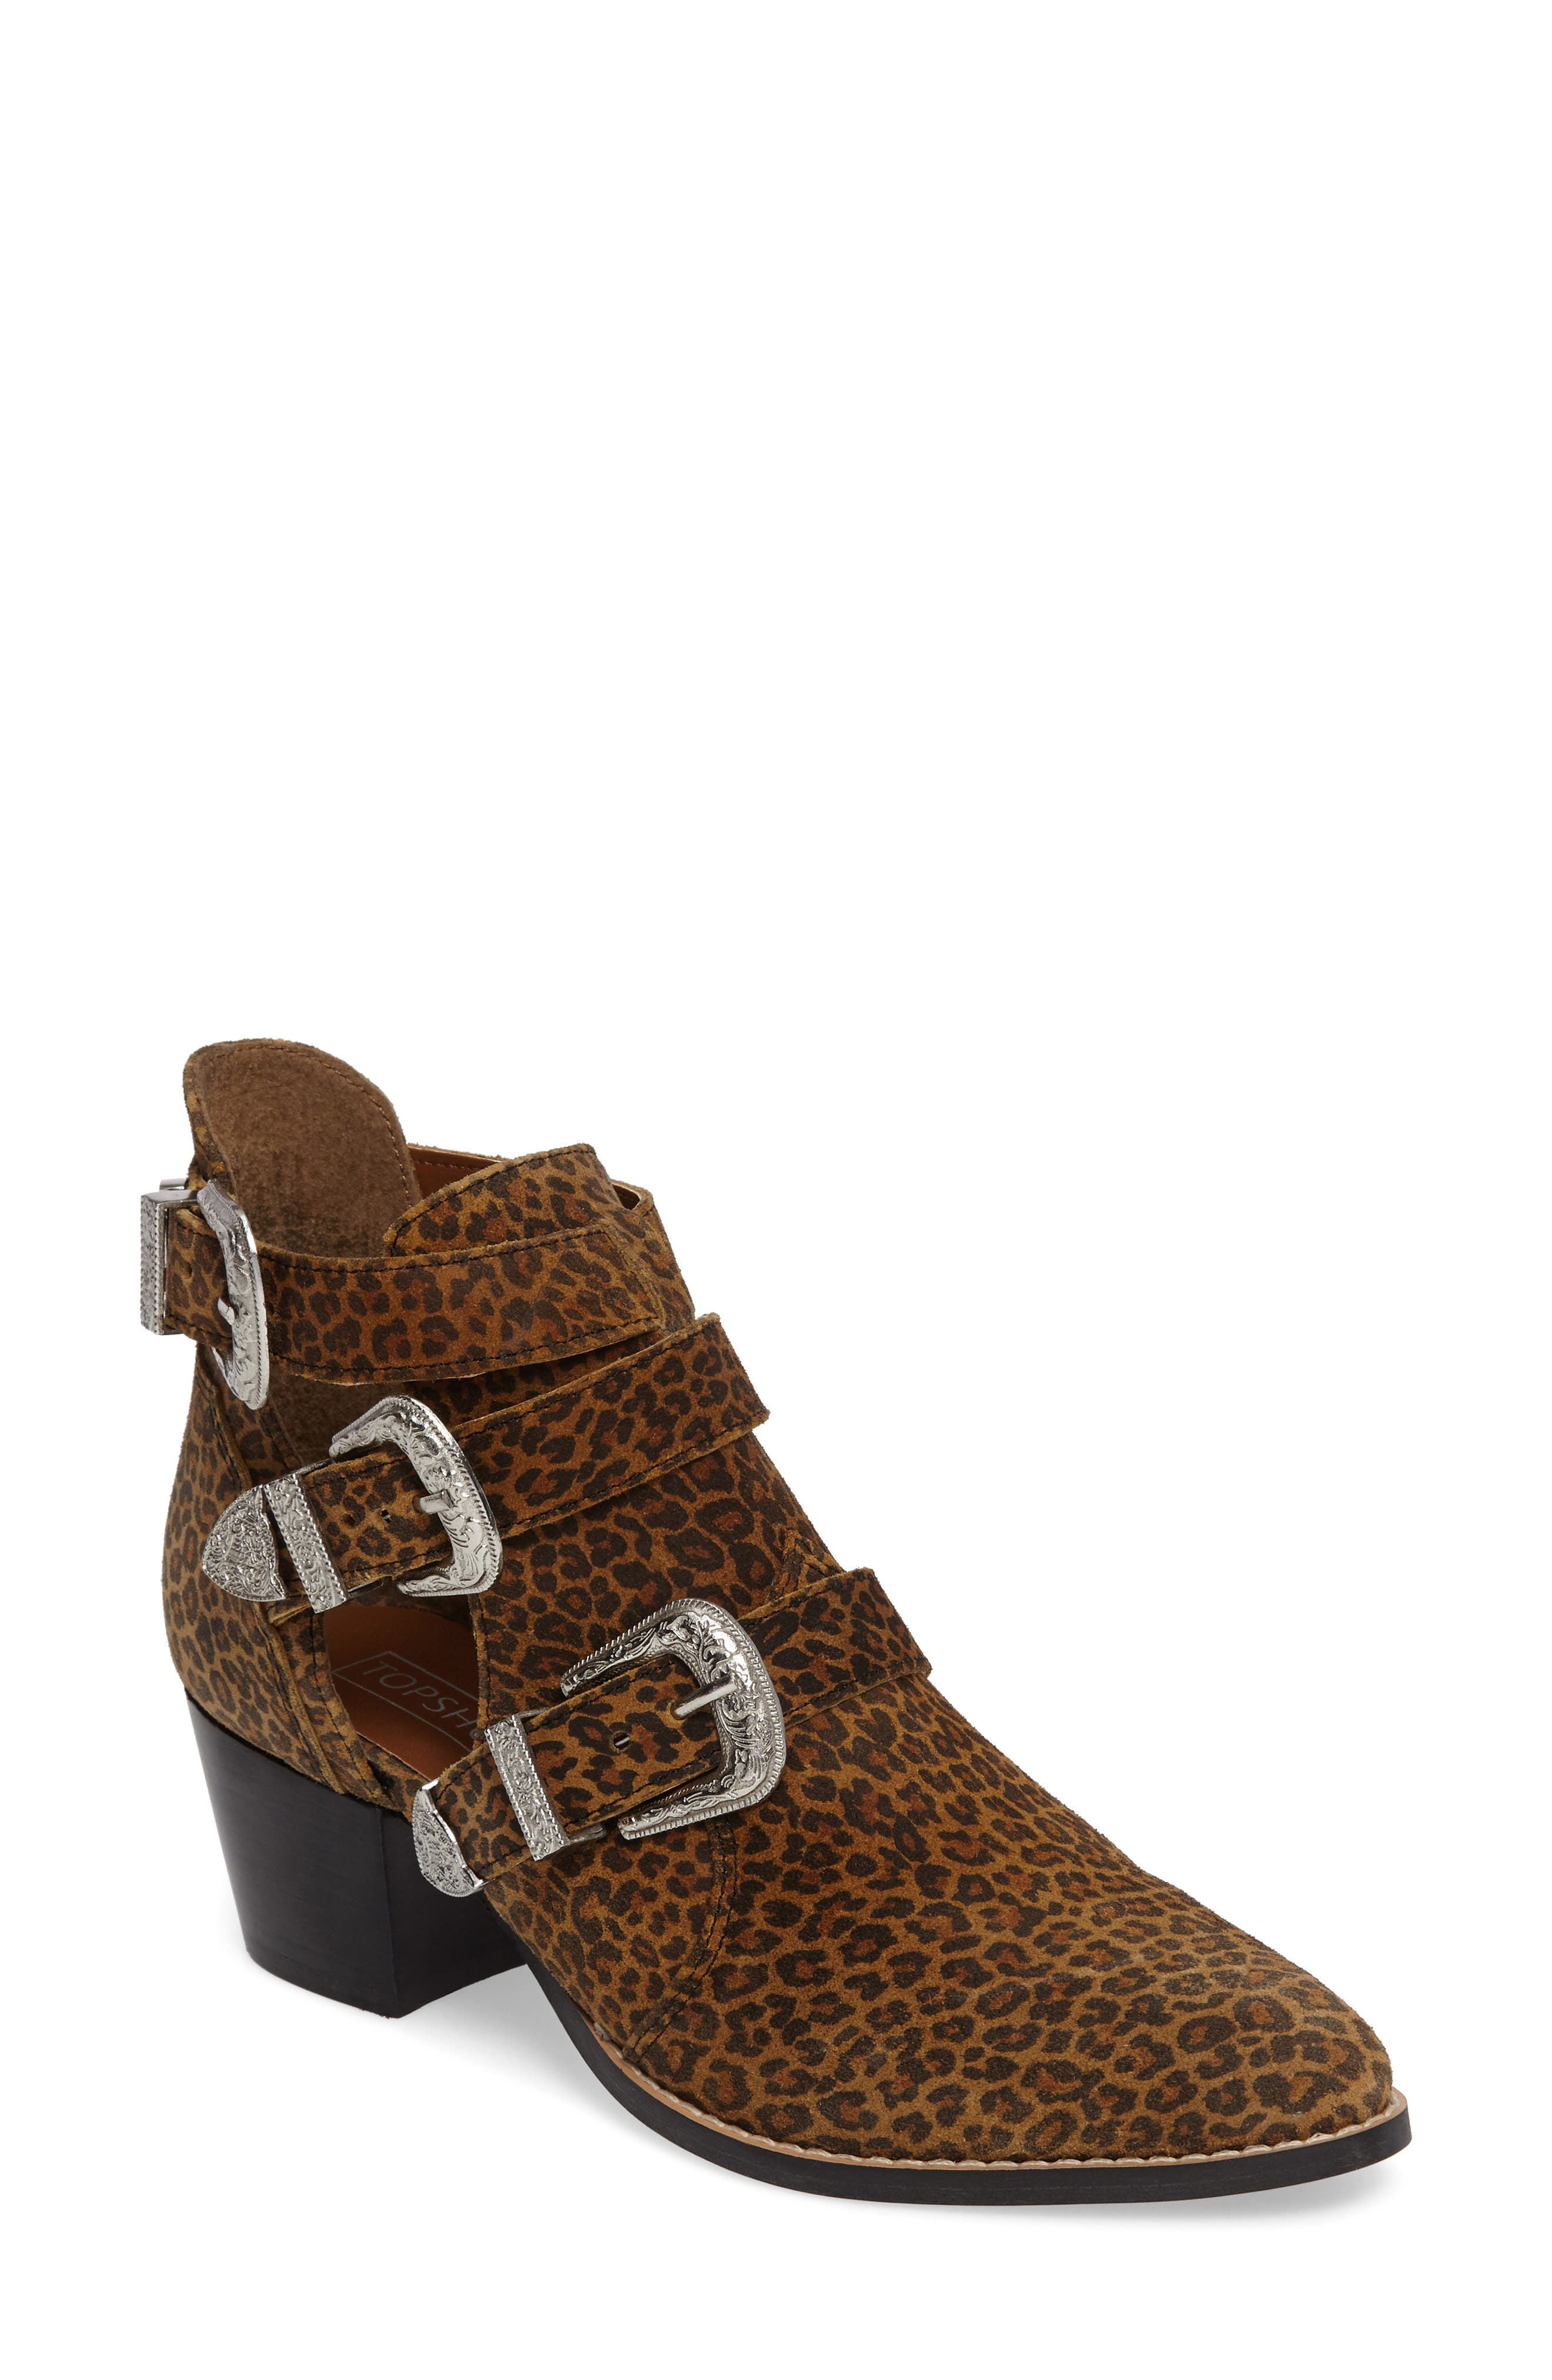 Alternate Image 1 Selected - Topshop Marmalade Leopard Print Buckle Bootie (Women)